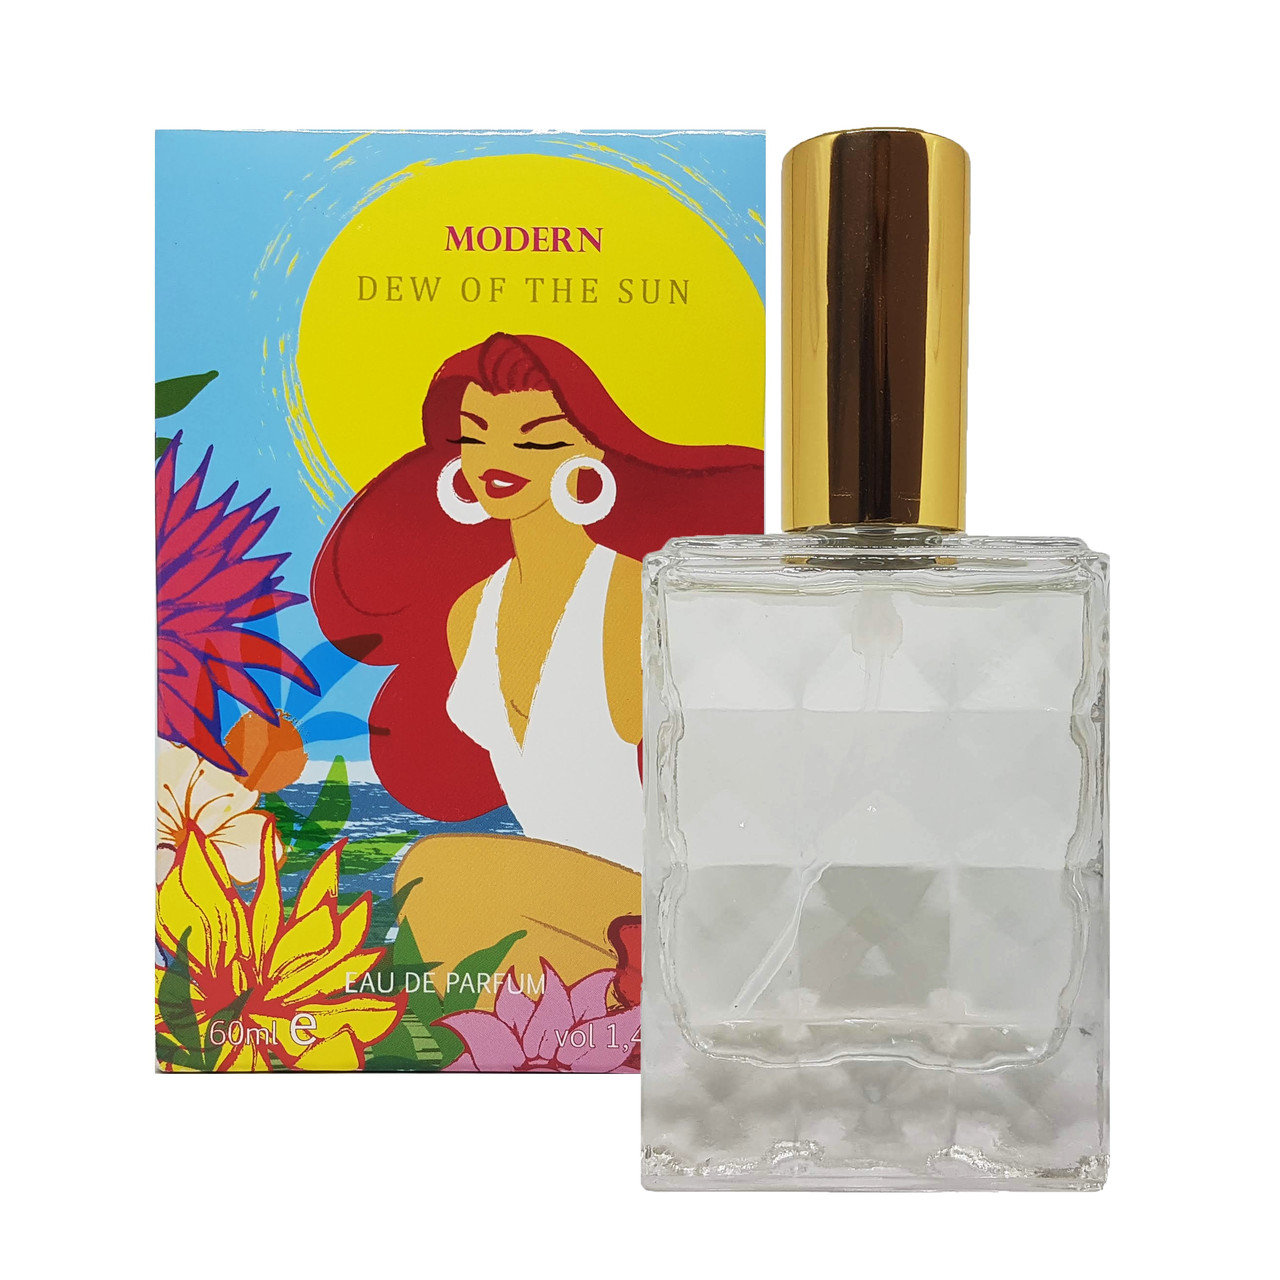 Modern Dew of the sun edp 60ml